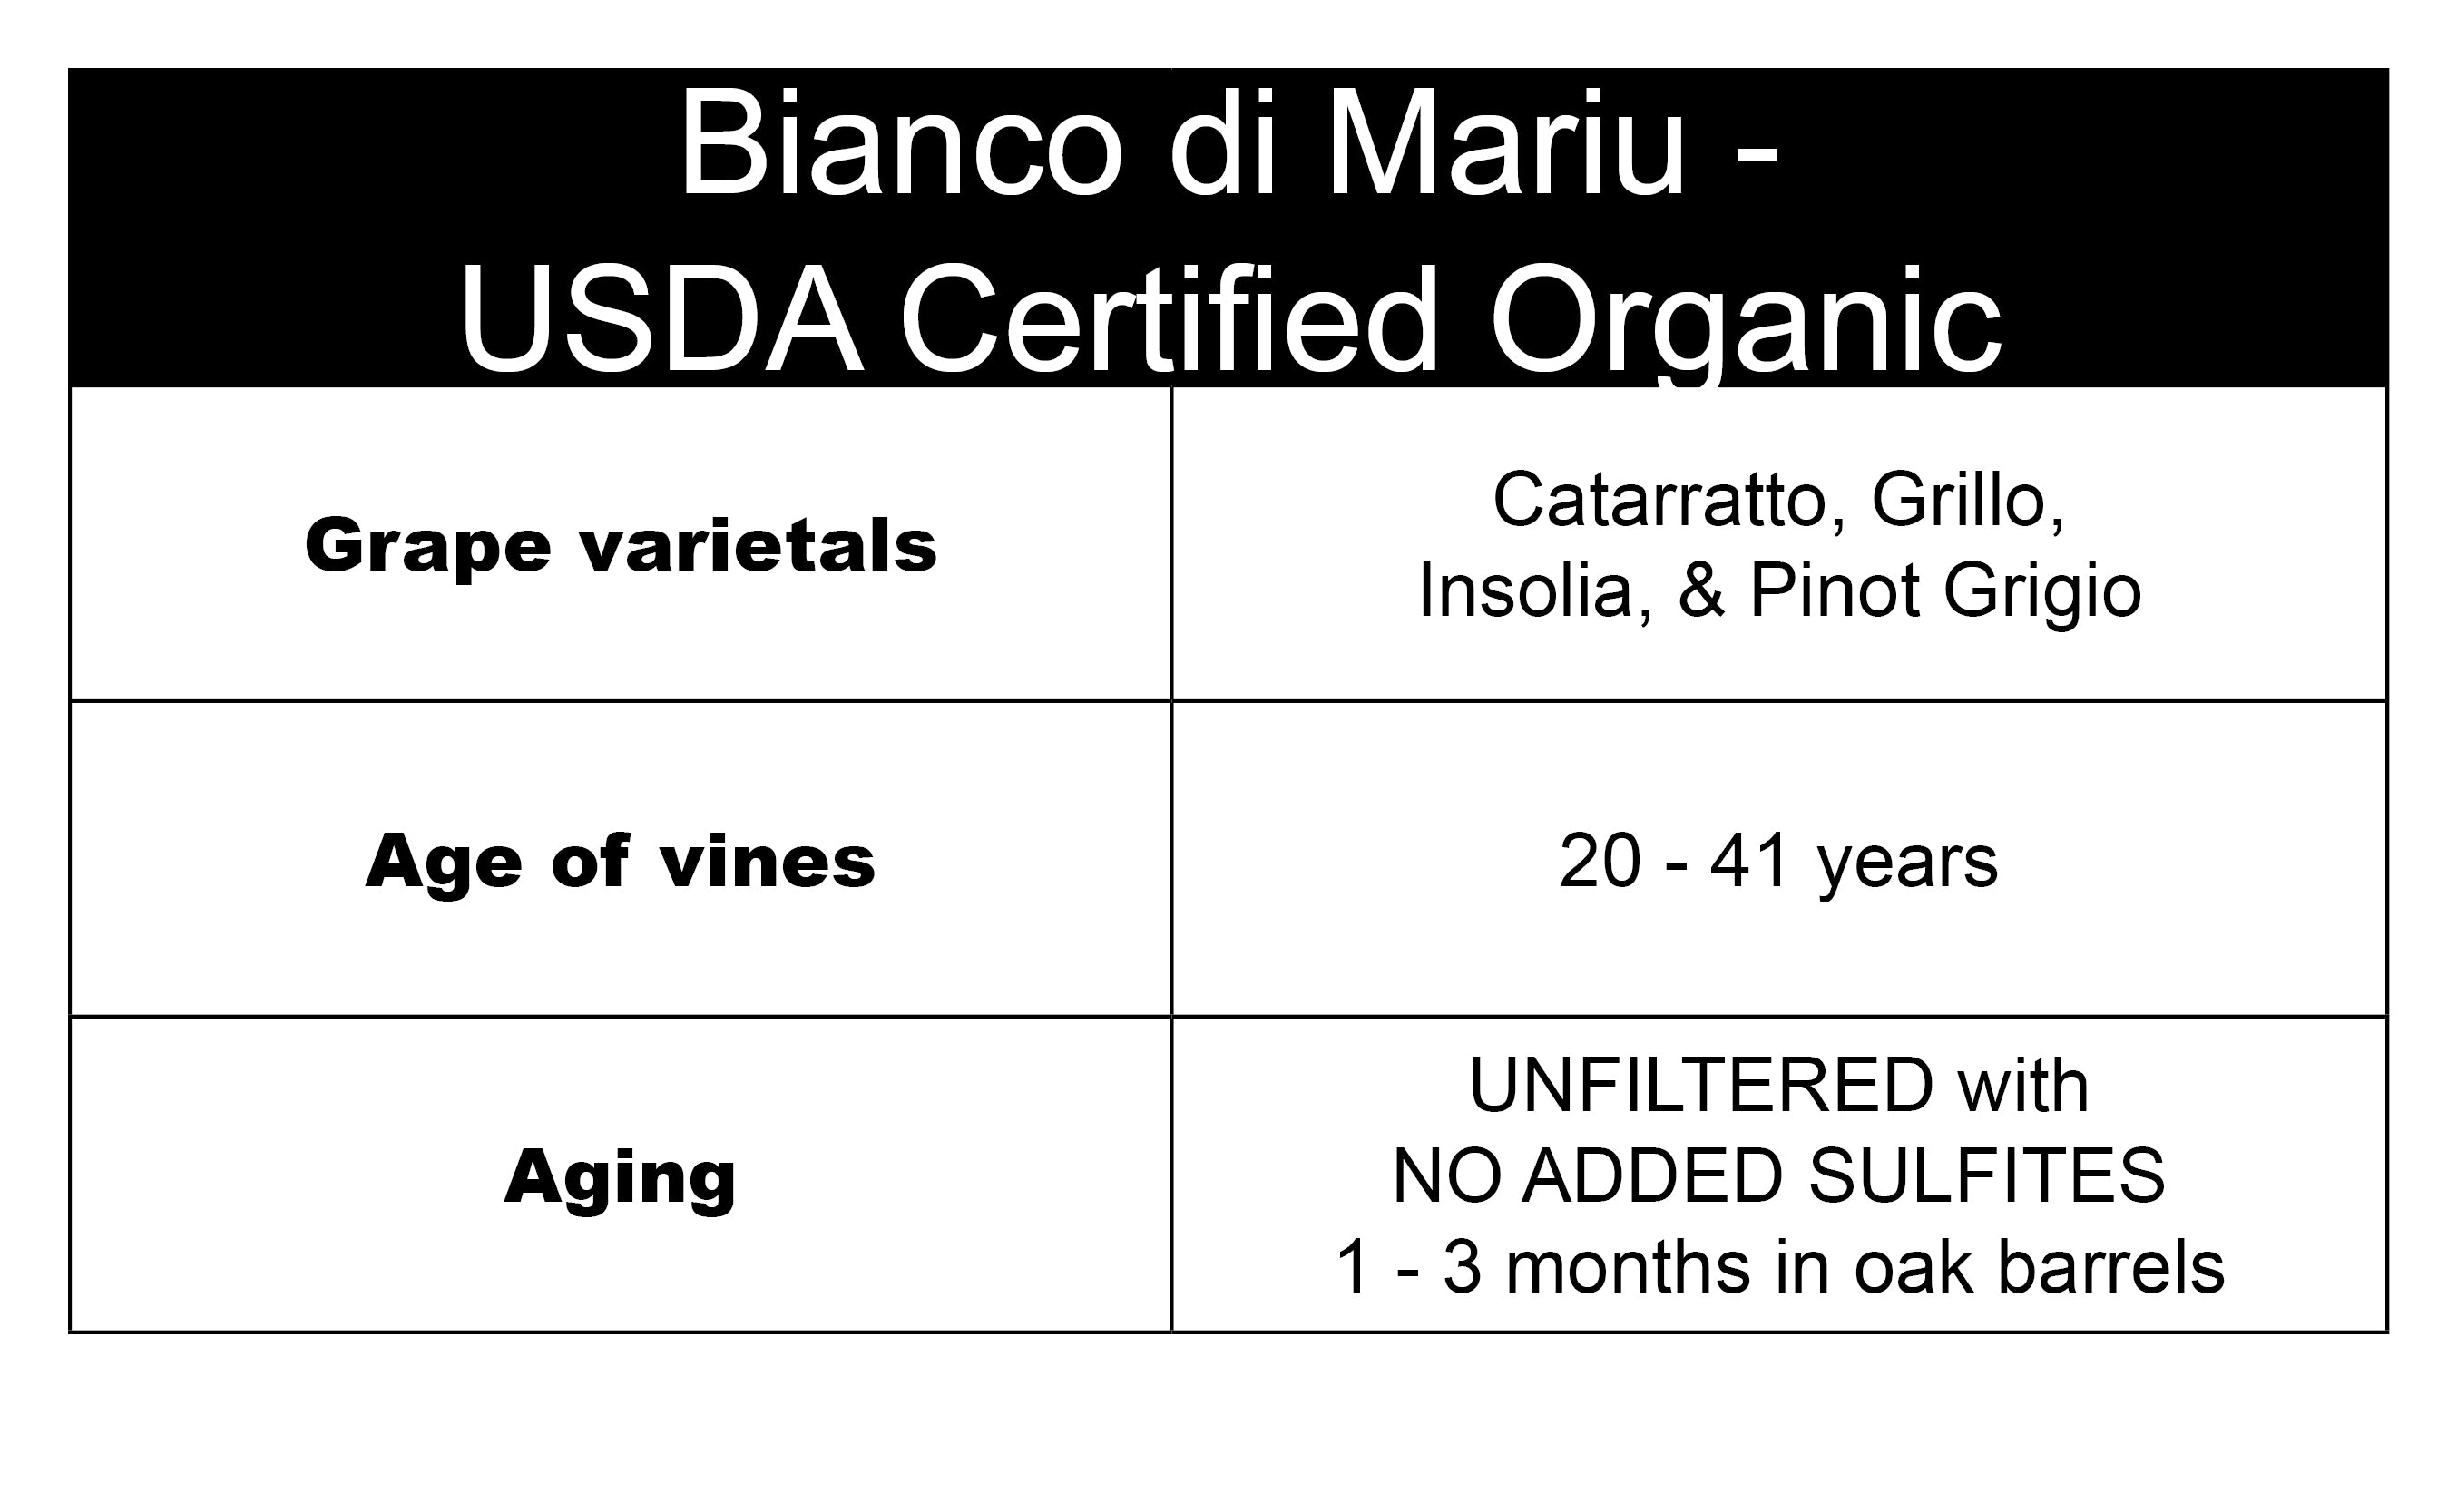 Tonnino Bianco USDA Certified Organic Unfiltered and No Added Sulfites